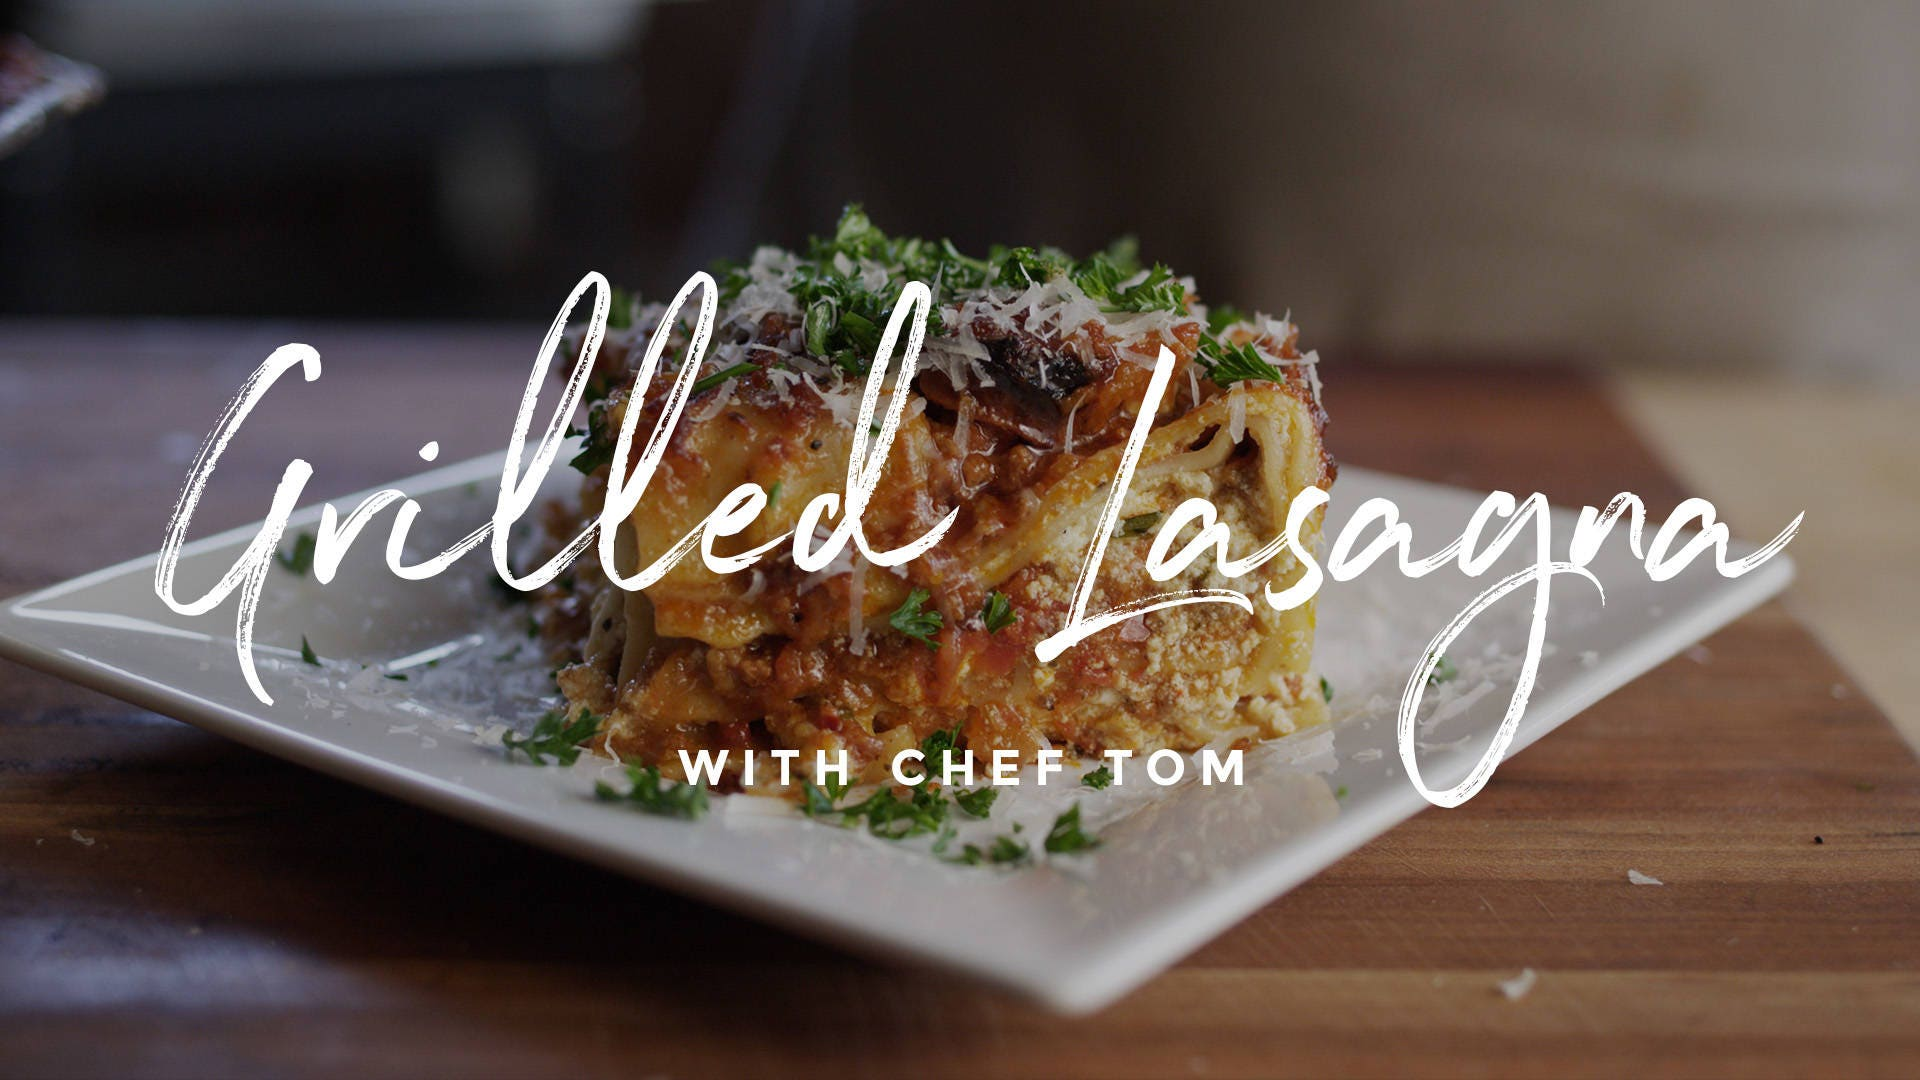 How to make Grilled Lasagna